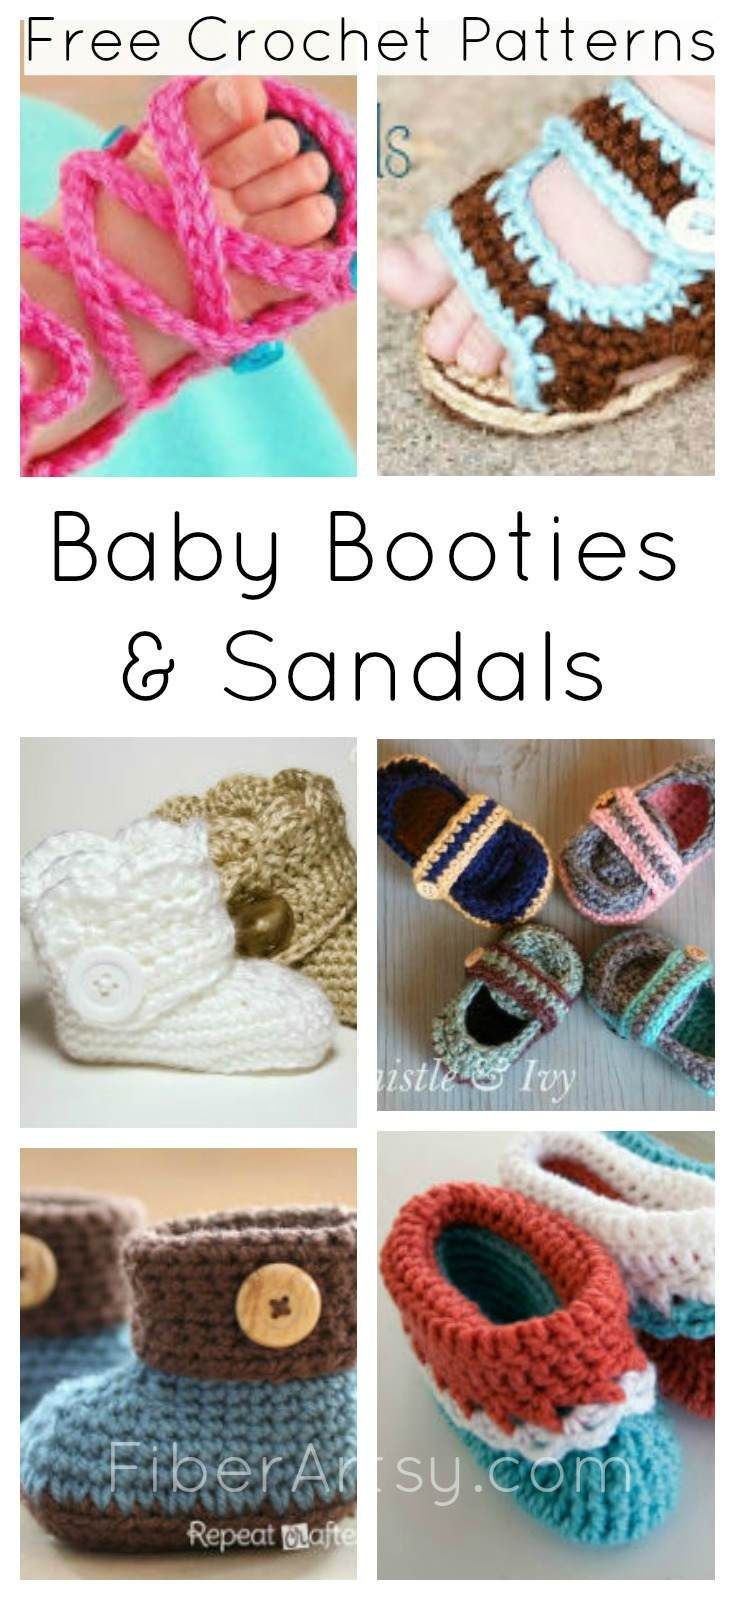 14 Free Crochet Patterns for Baby Booties | crochet | Pinterest ...